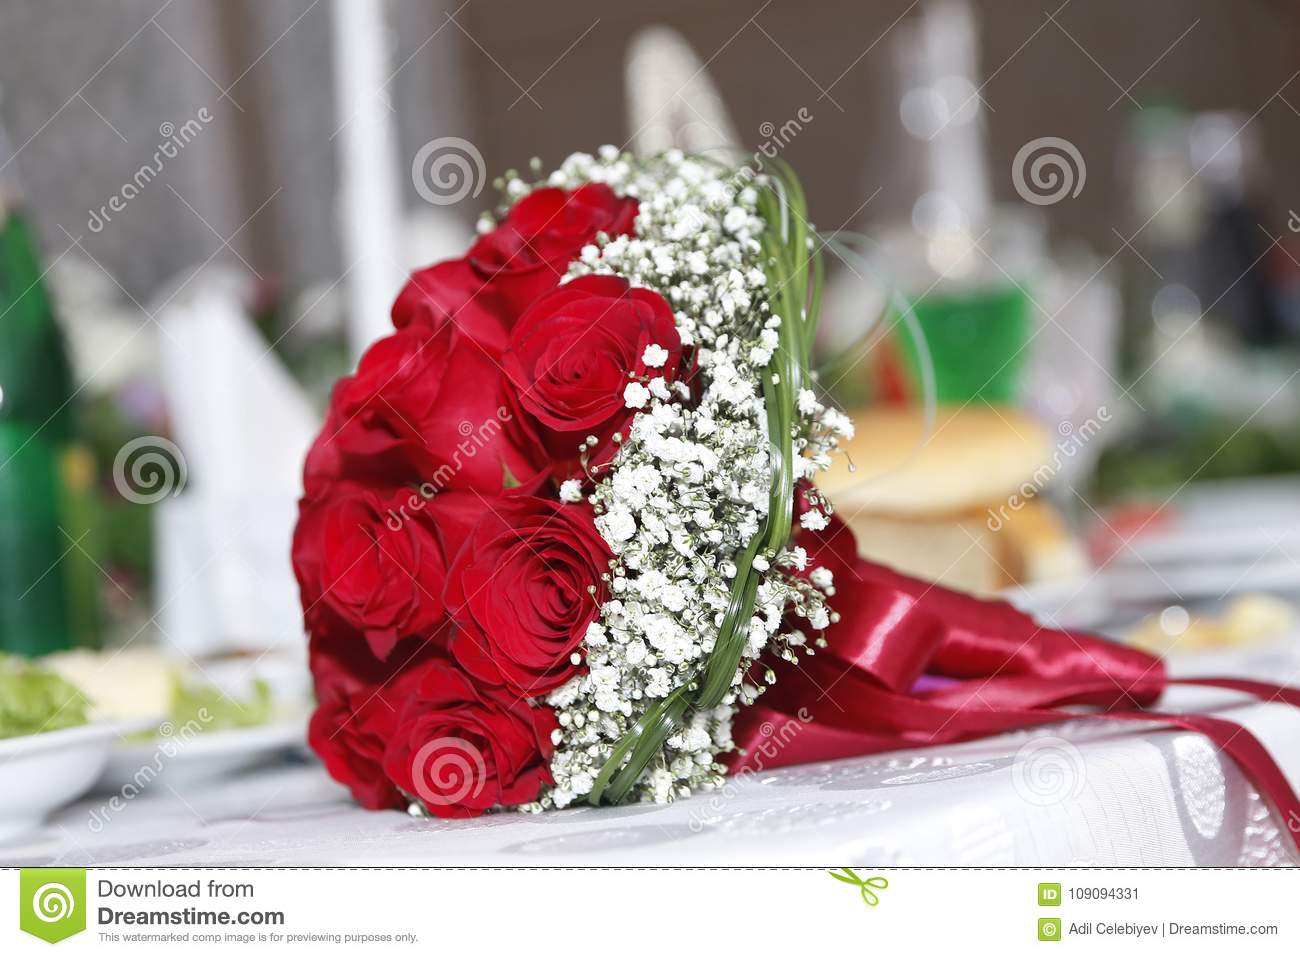 Red Rose Wedding Bouqet.Bridal Red Wedding Bouquet Valentines Day Concept A